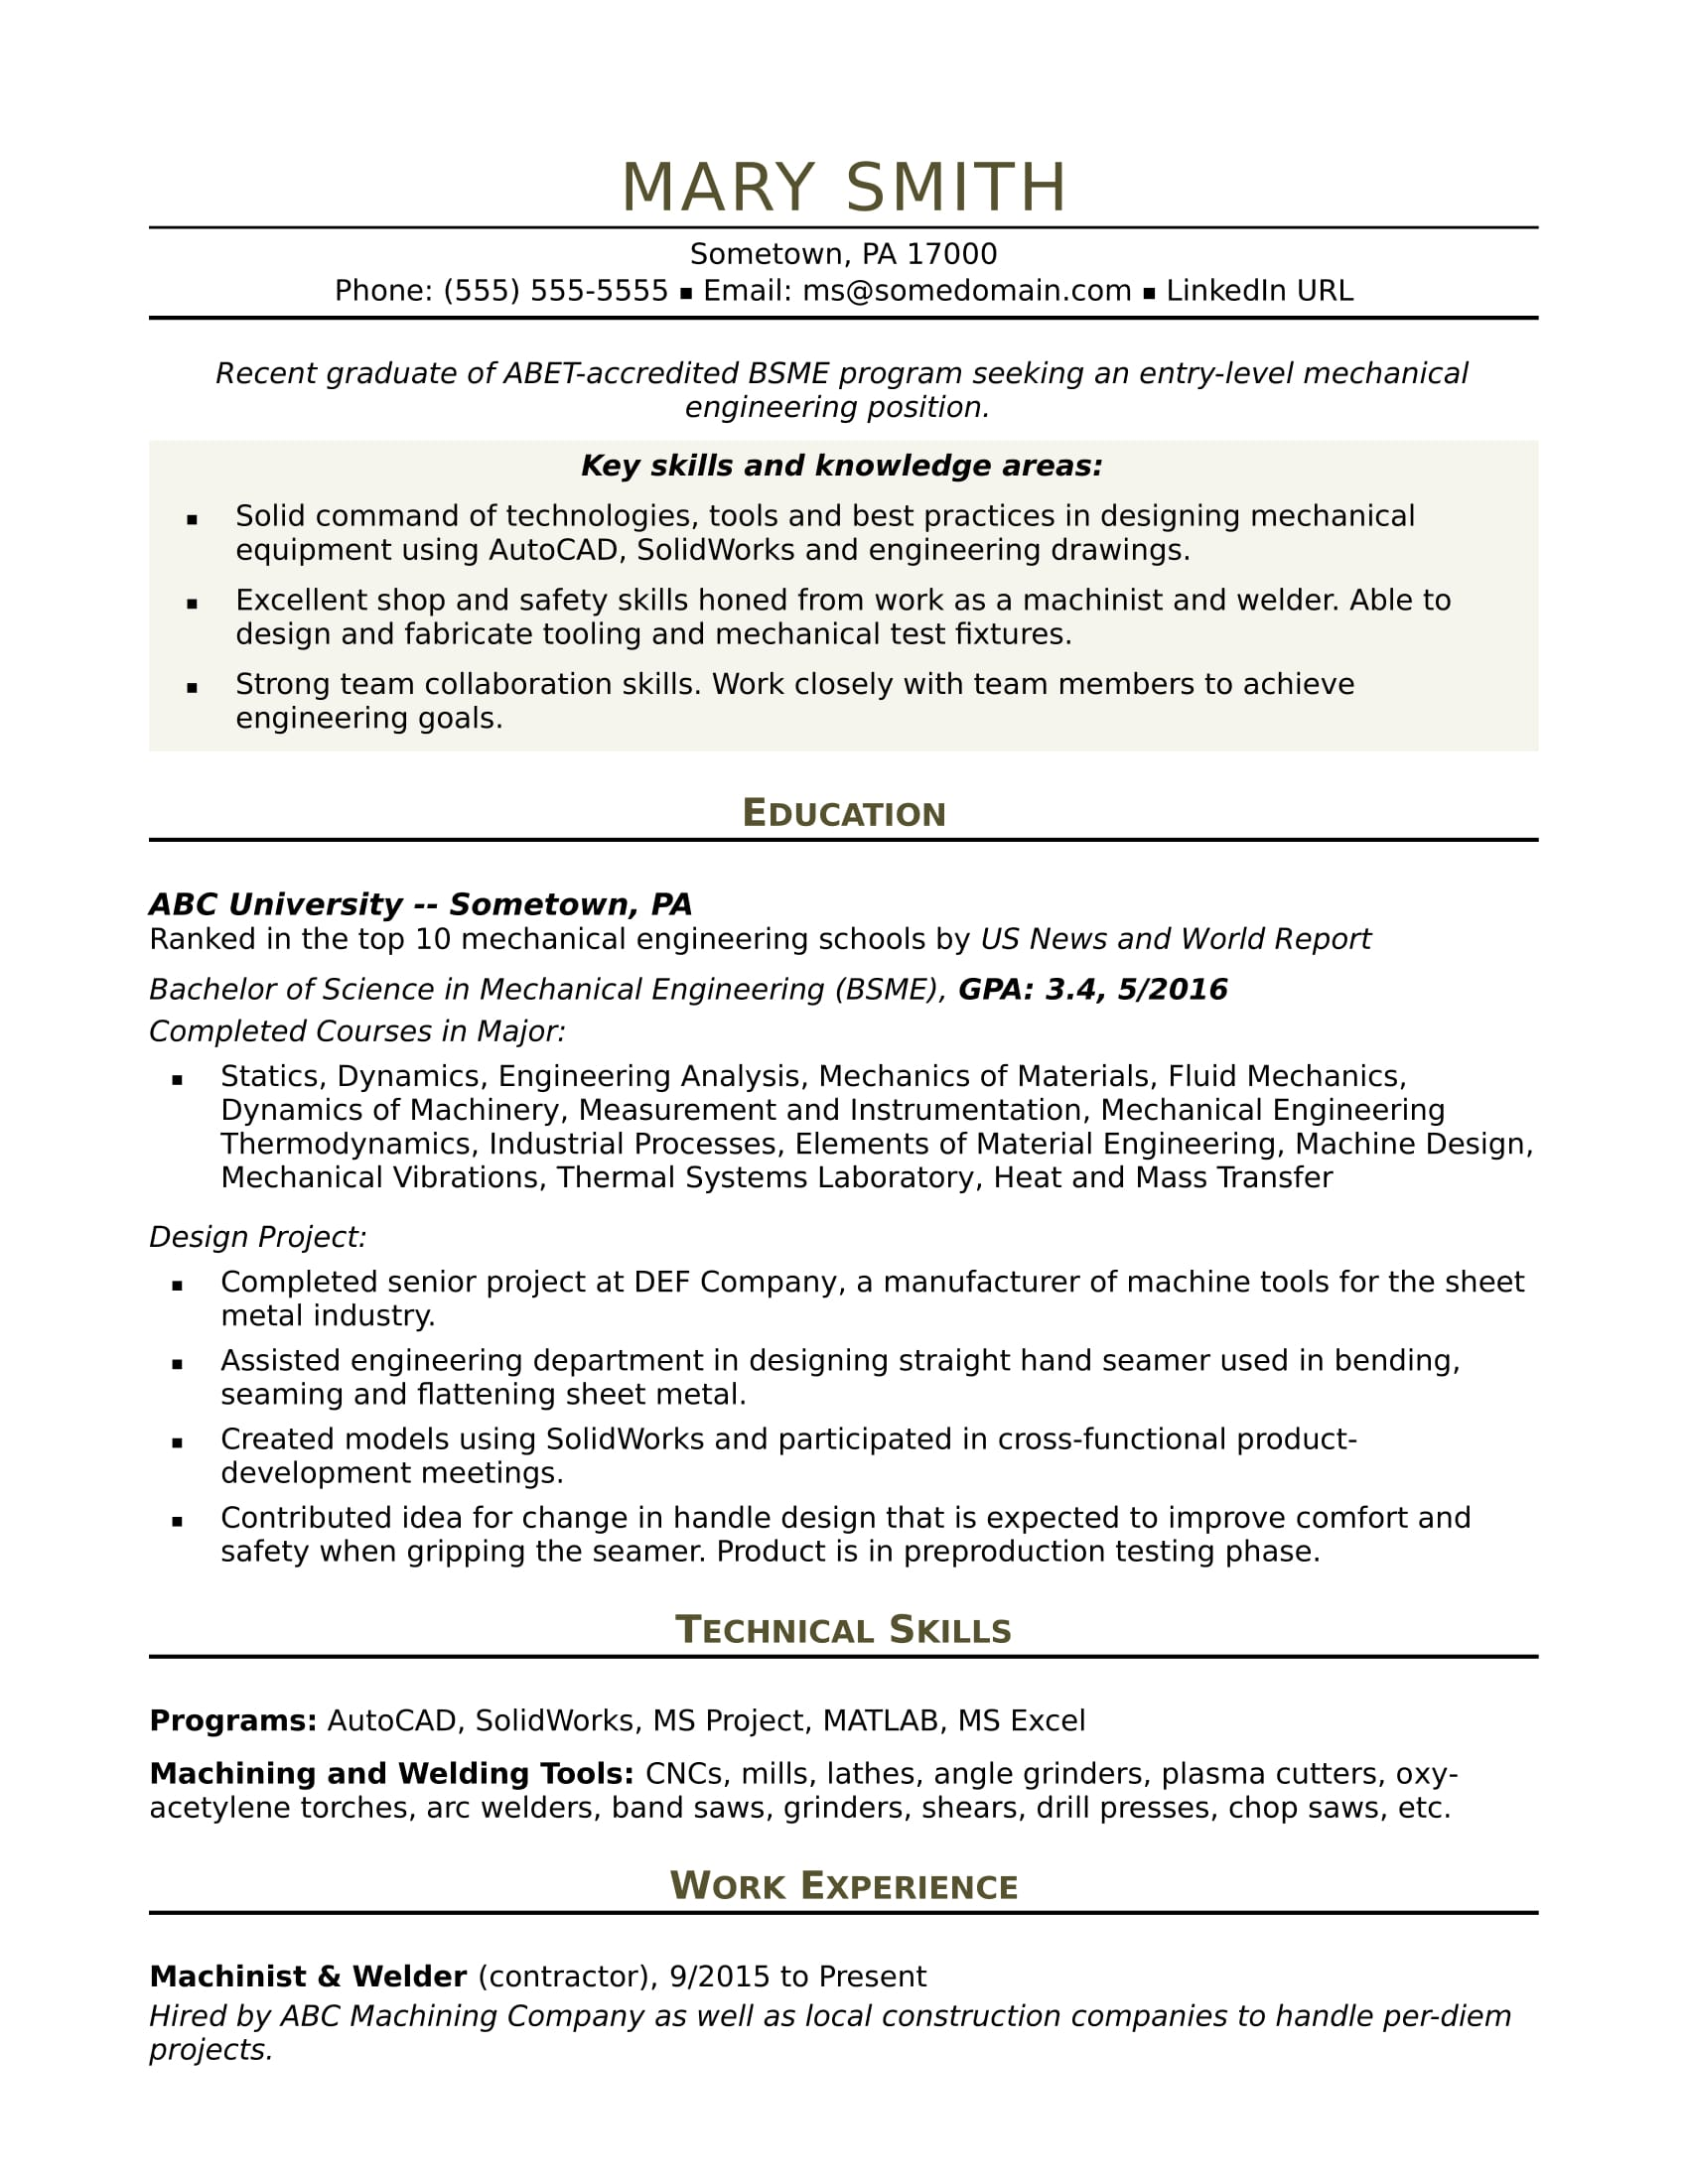 Amazing Sample Resume For An Entry Level Mechanical Engineer Regard To Sample Mechanical Engineering Resume